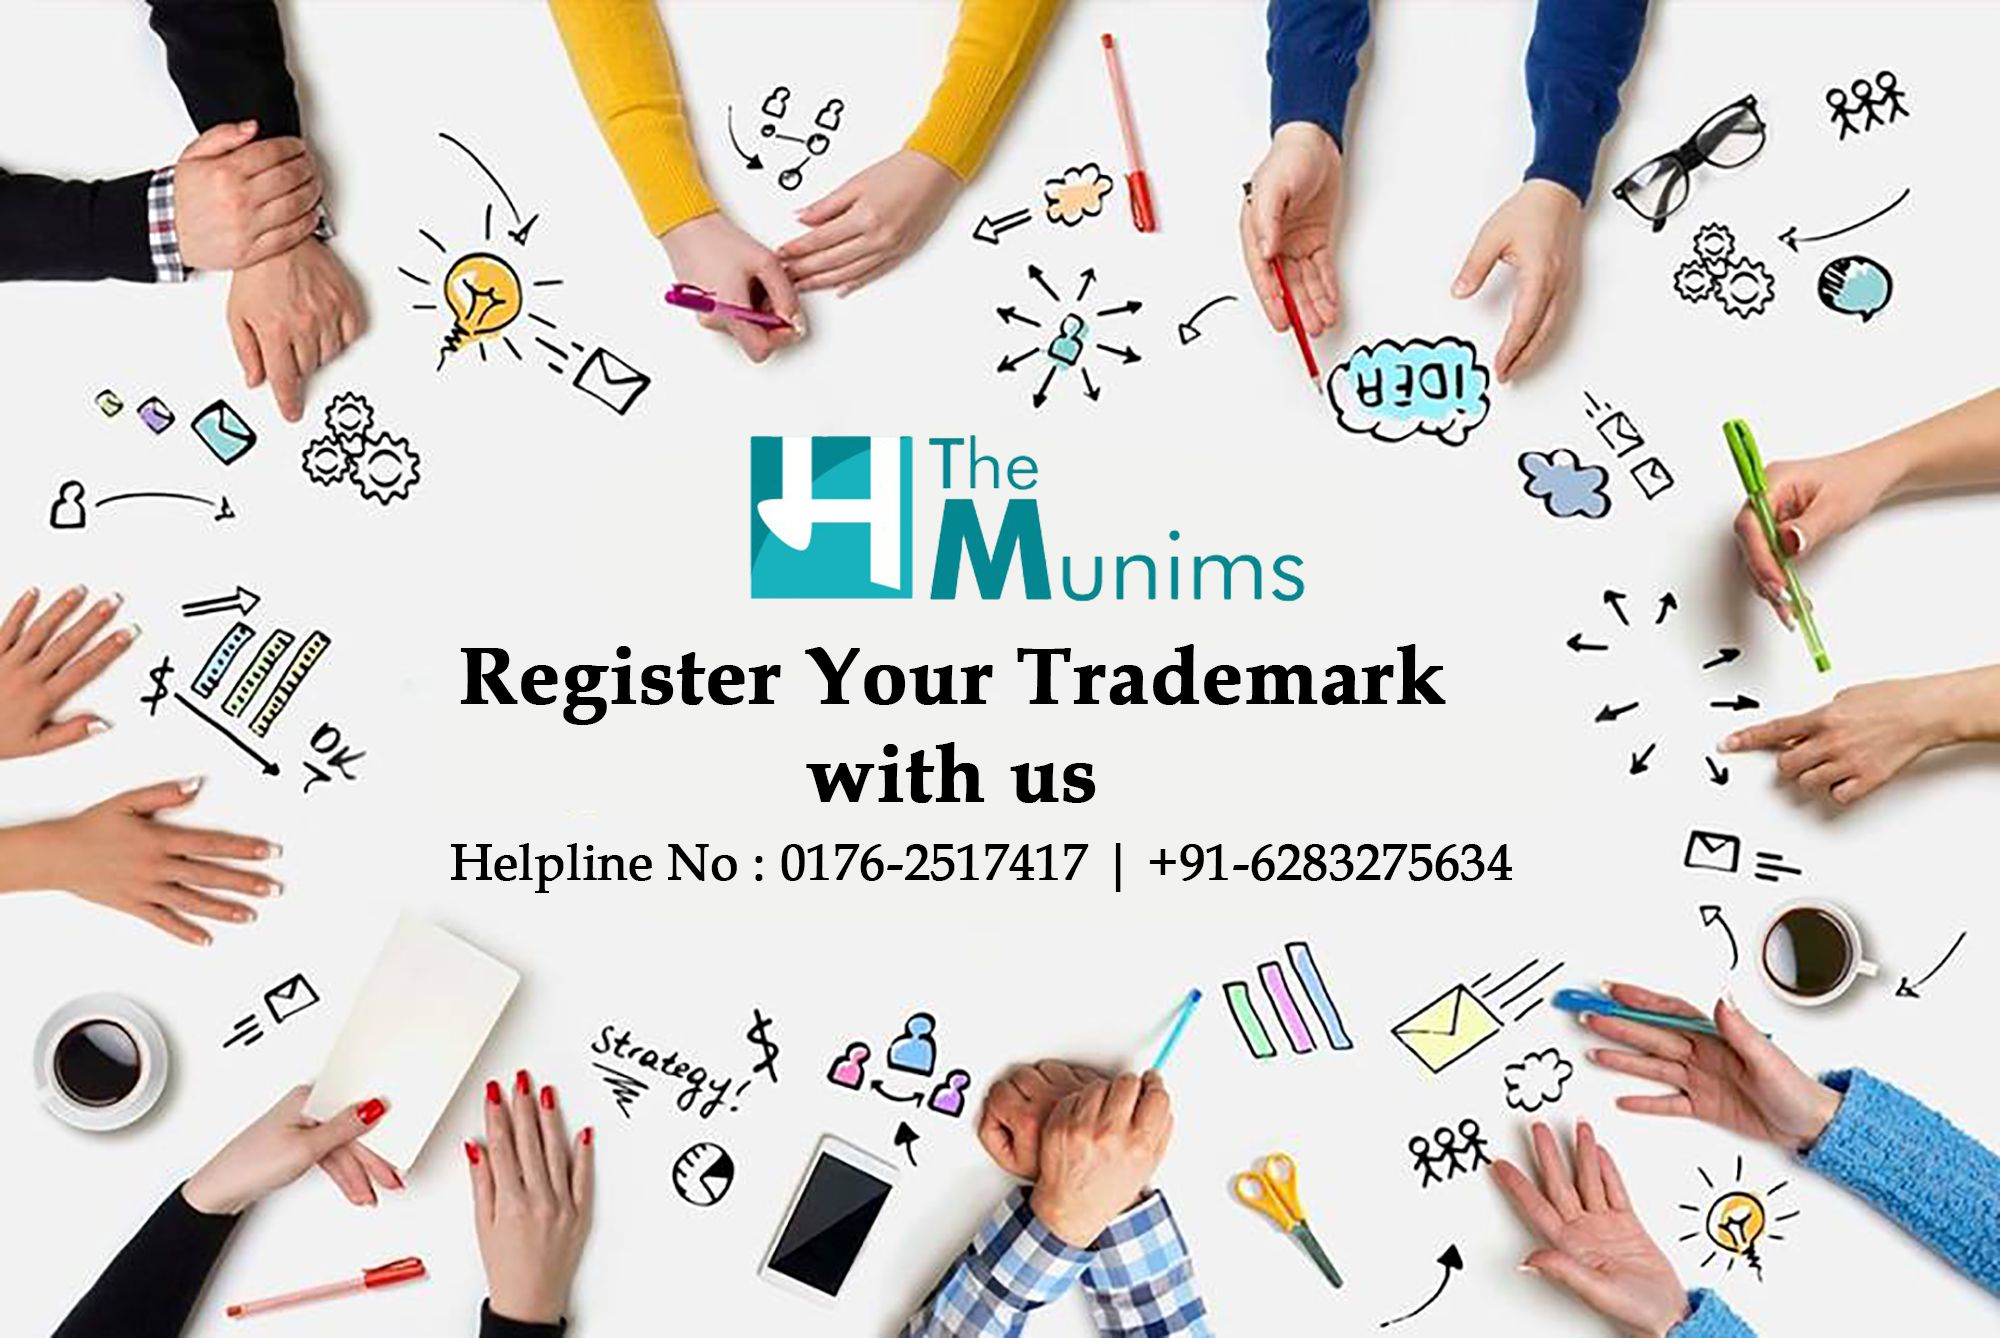 Are you looking for trademark registration? The Munims is